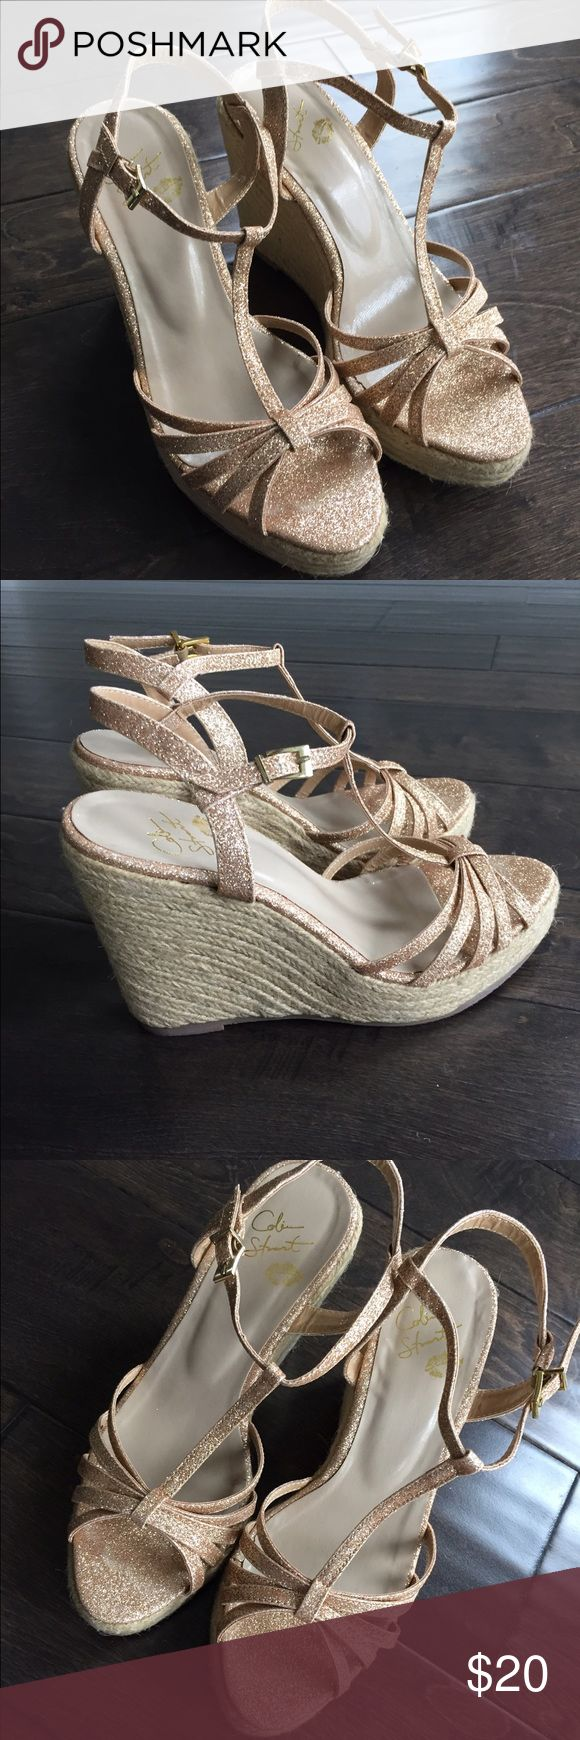 Colin Stuart champagne espadrilles Colin Stuart champagne glitter espadrille wedge sandals. Excellent used condition. Colin Stuart Shoes Espadrilles